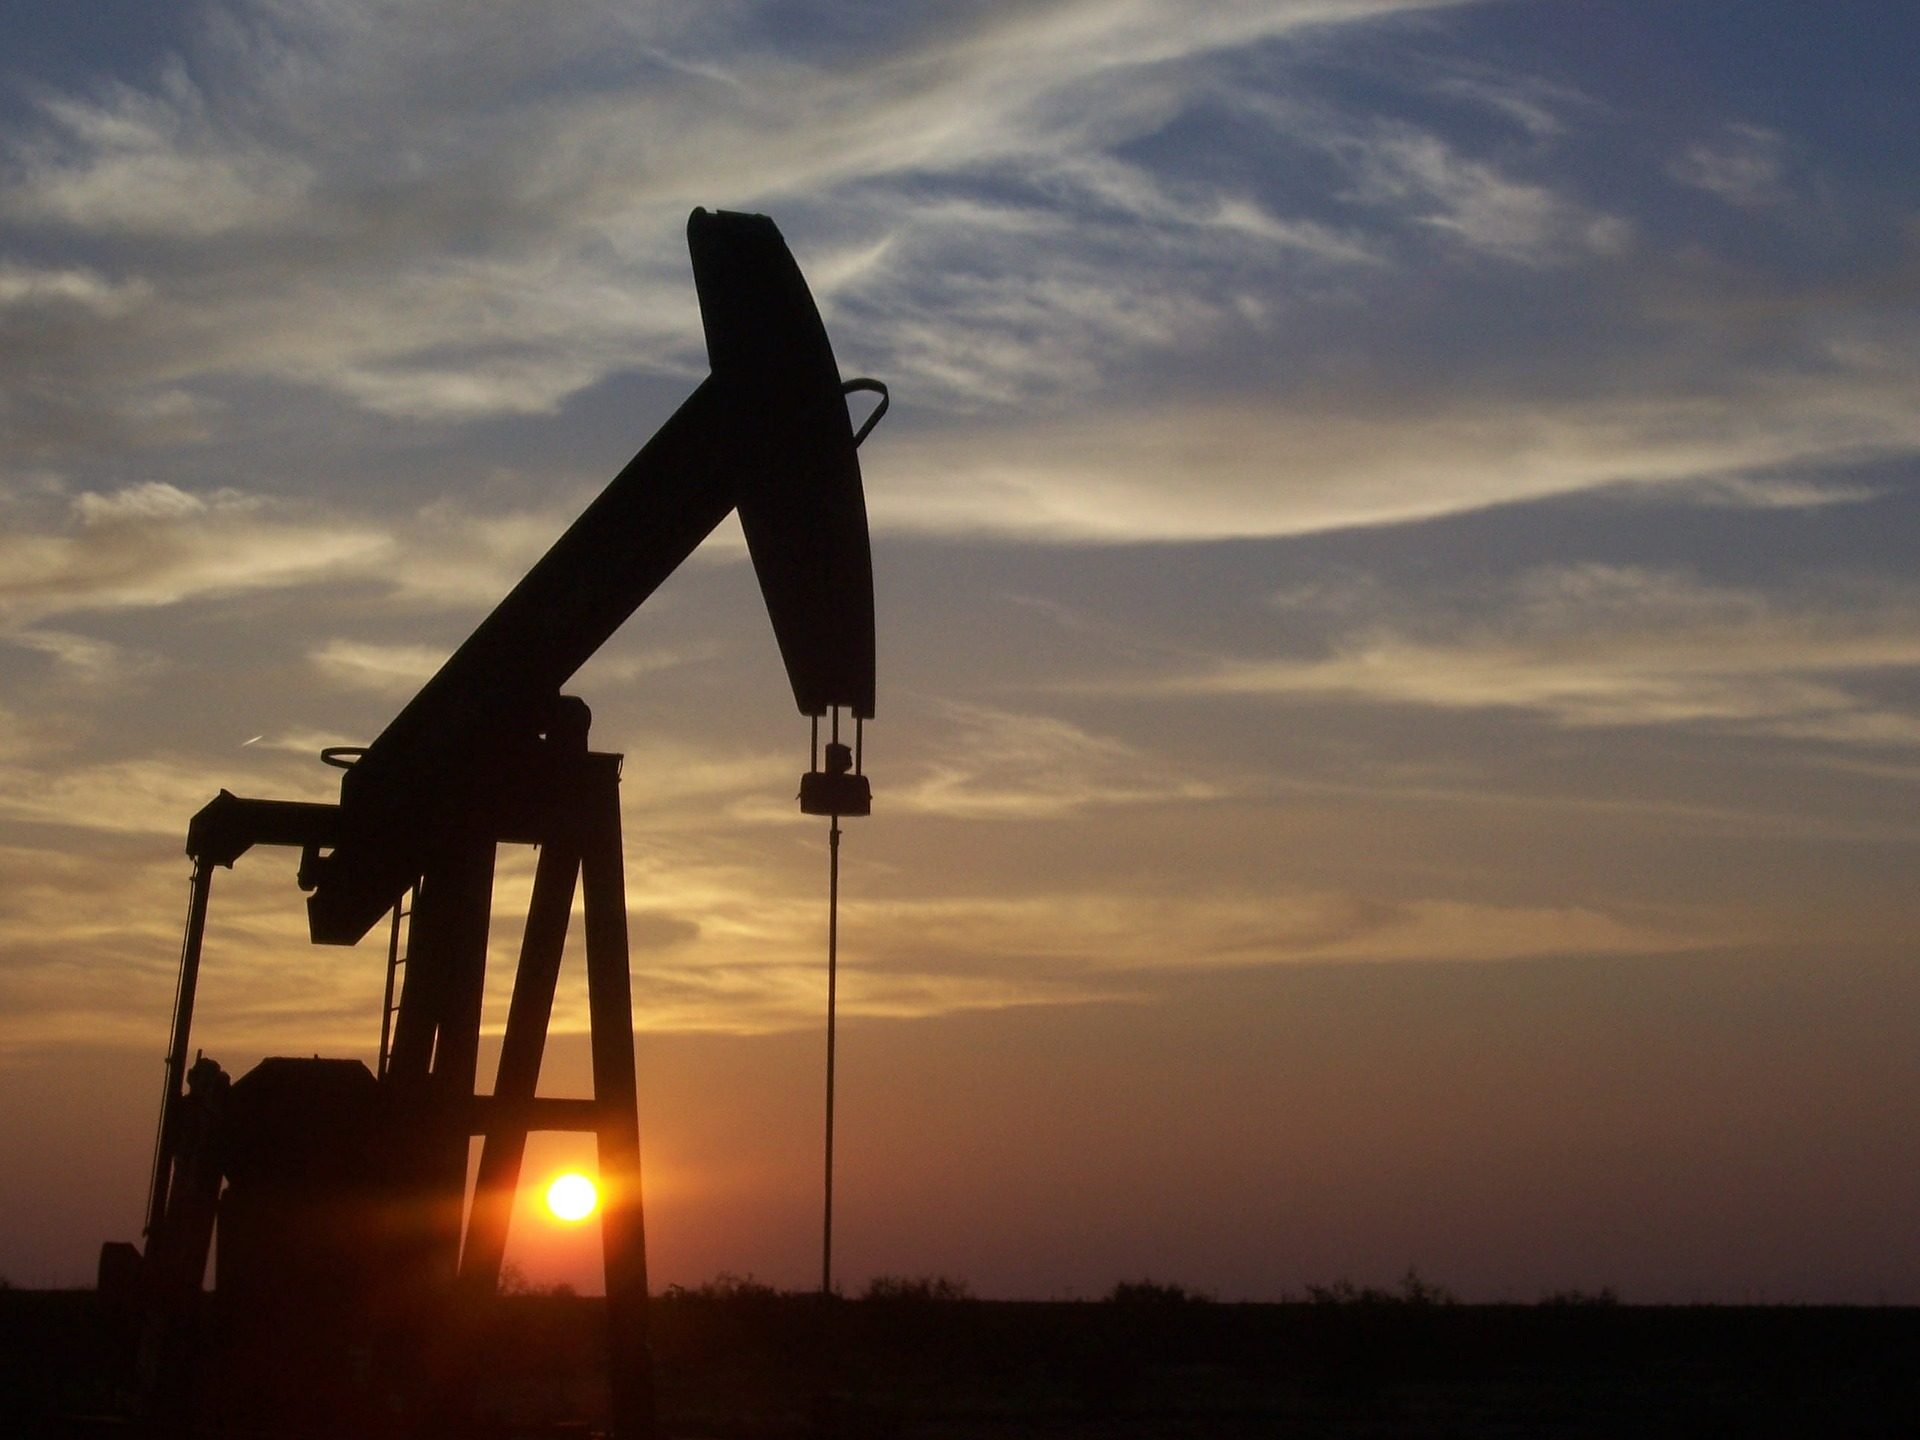 Falling Oil Prices Renew High-Yield, Junk Bond ETF Concerns